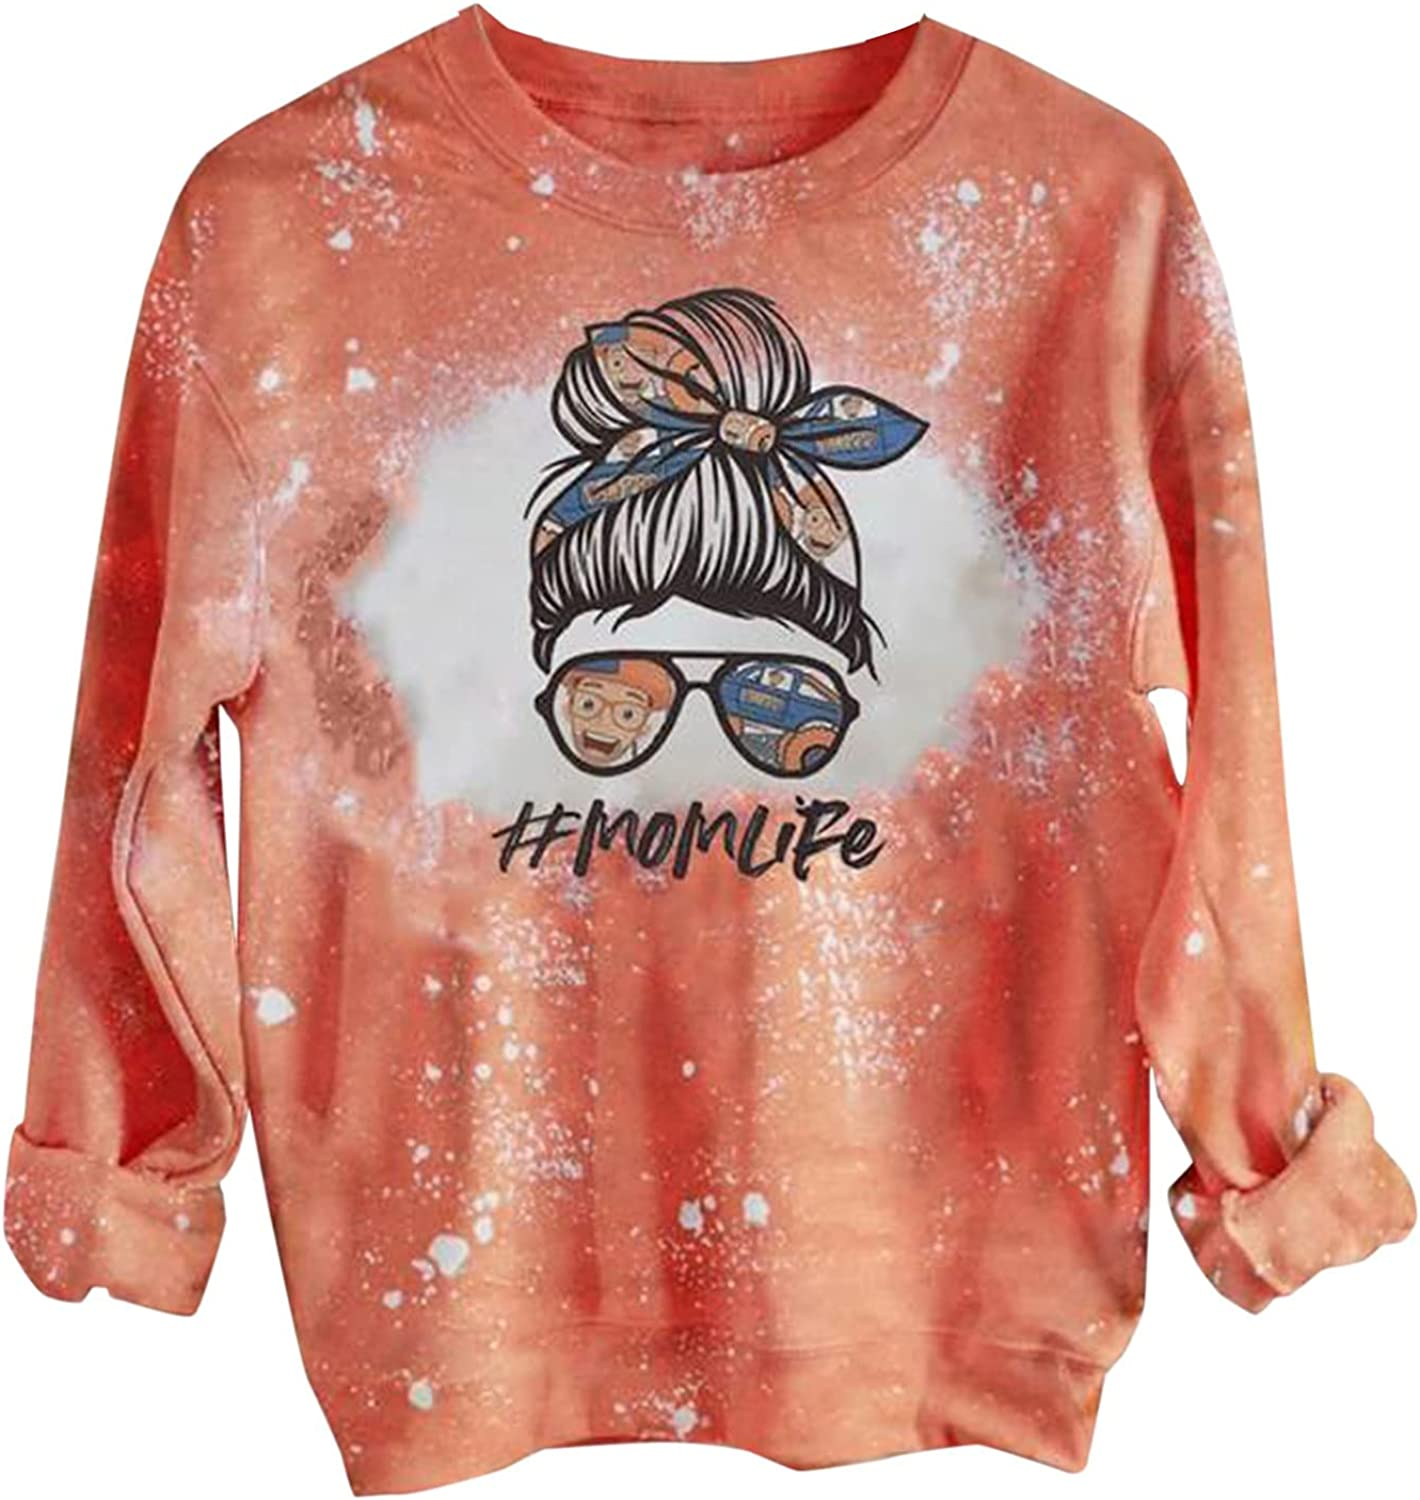 Crewneck Blouses for Women Graphic Tie Dye Printed Sweatshirt Casual Loose Long-Sleeved T Shirt Basic Pullover Top Plus Size